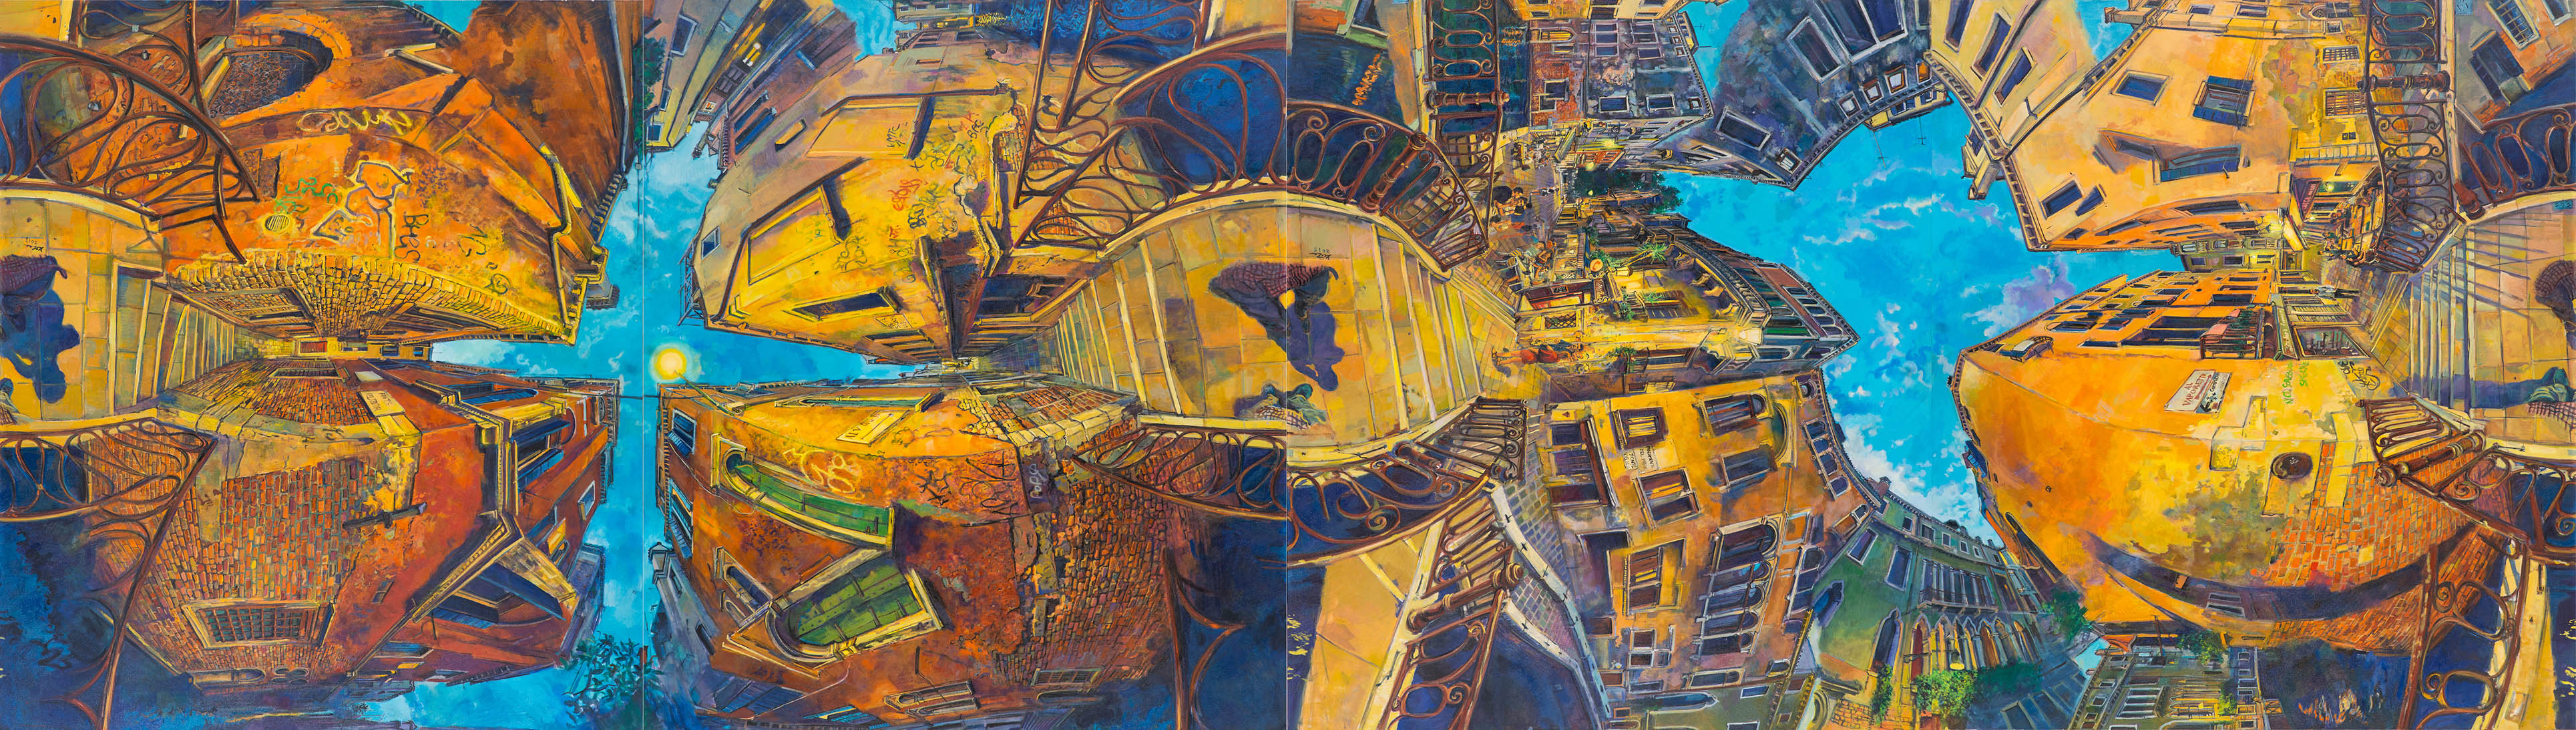 Dancing with Shadows 1&2 ,oil on canvas, 190 x 680cm (quadriptych),2018 -1